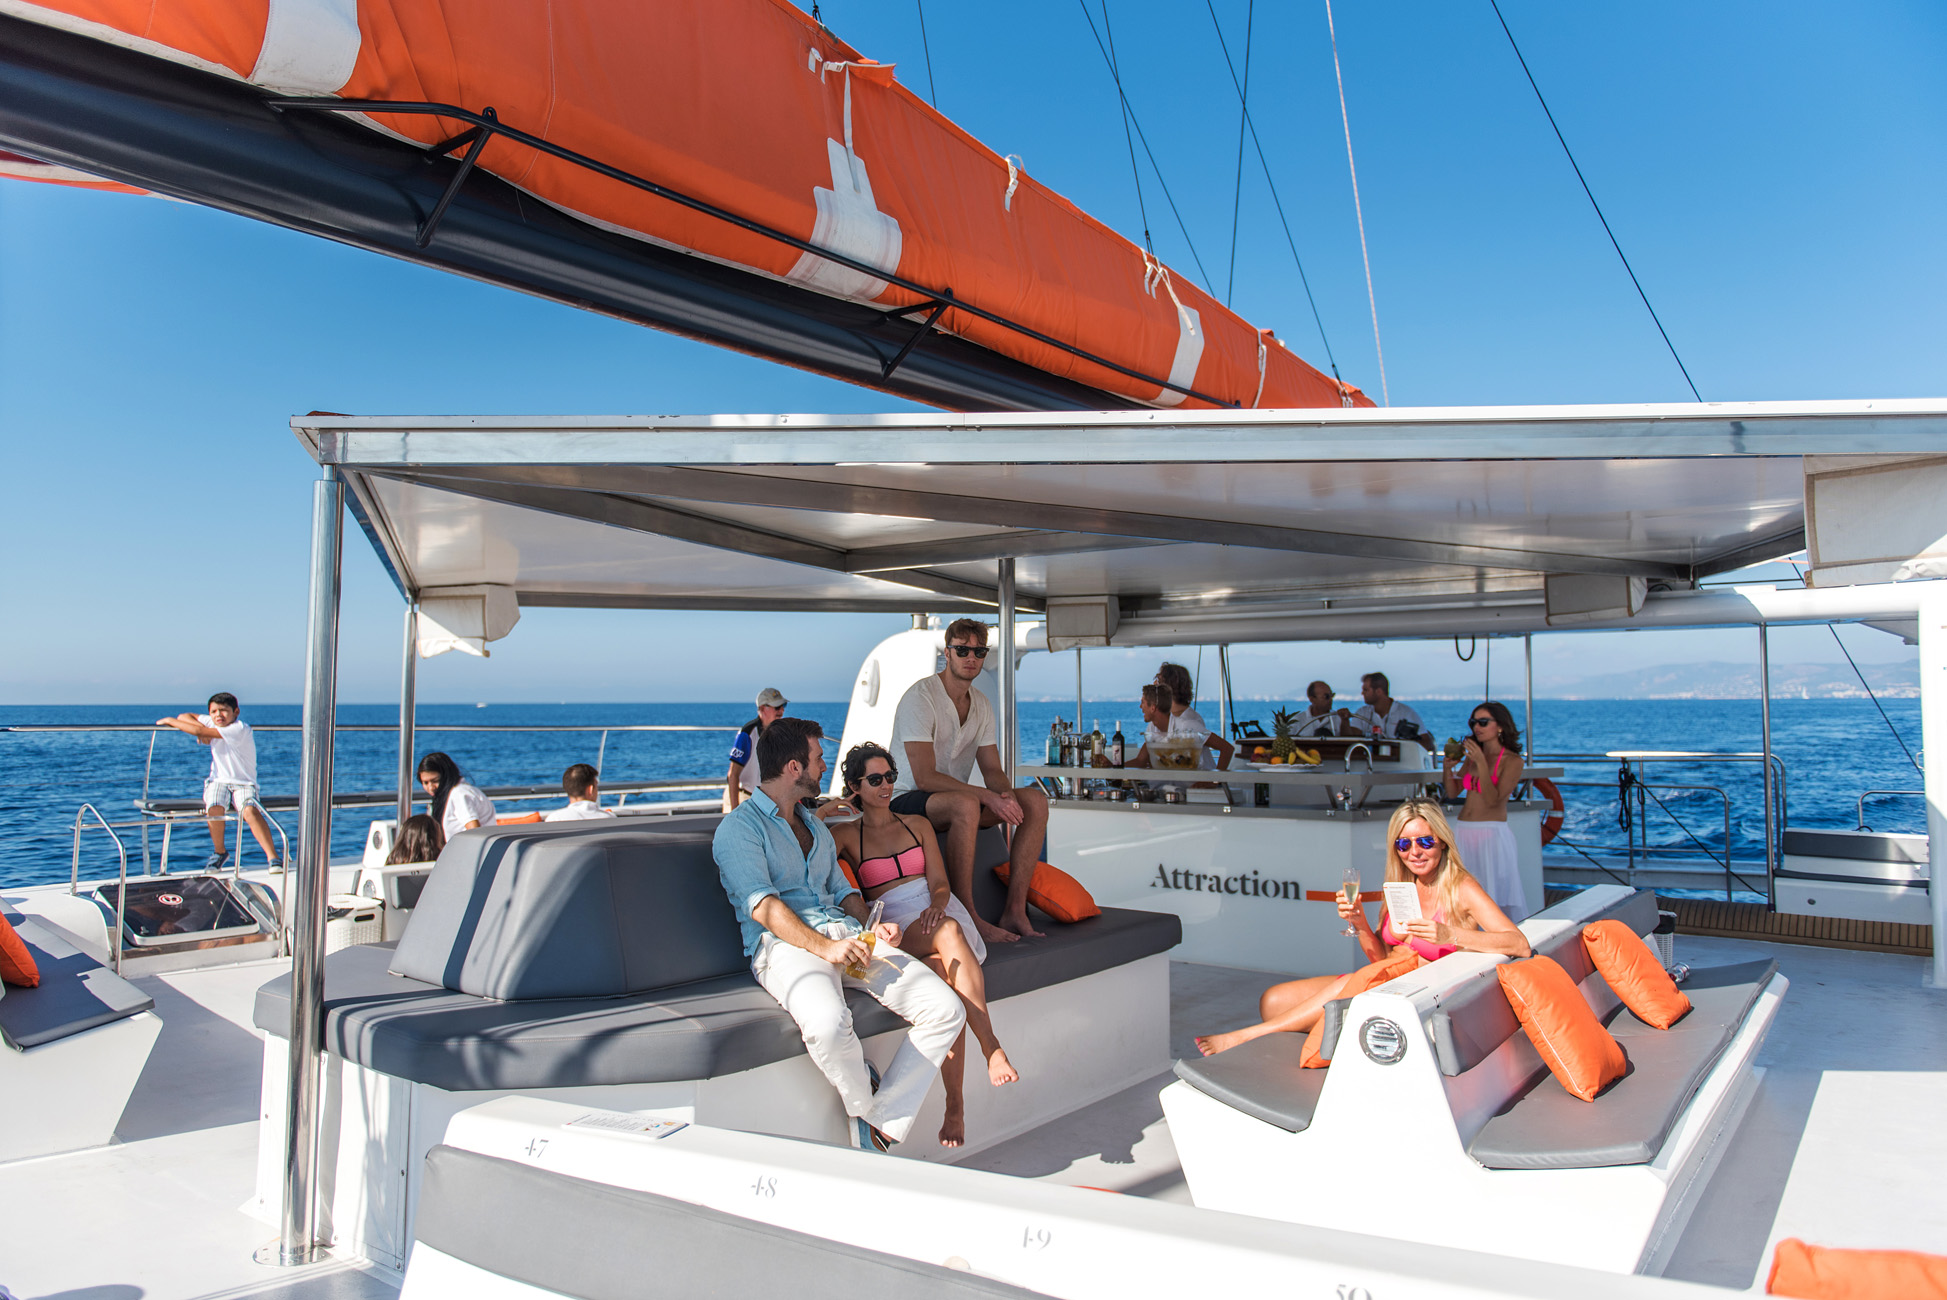 Mallorca catamaran sunset tour